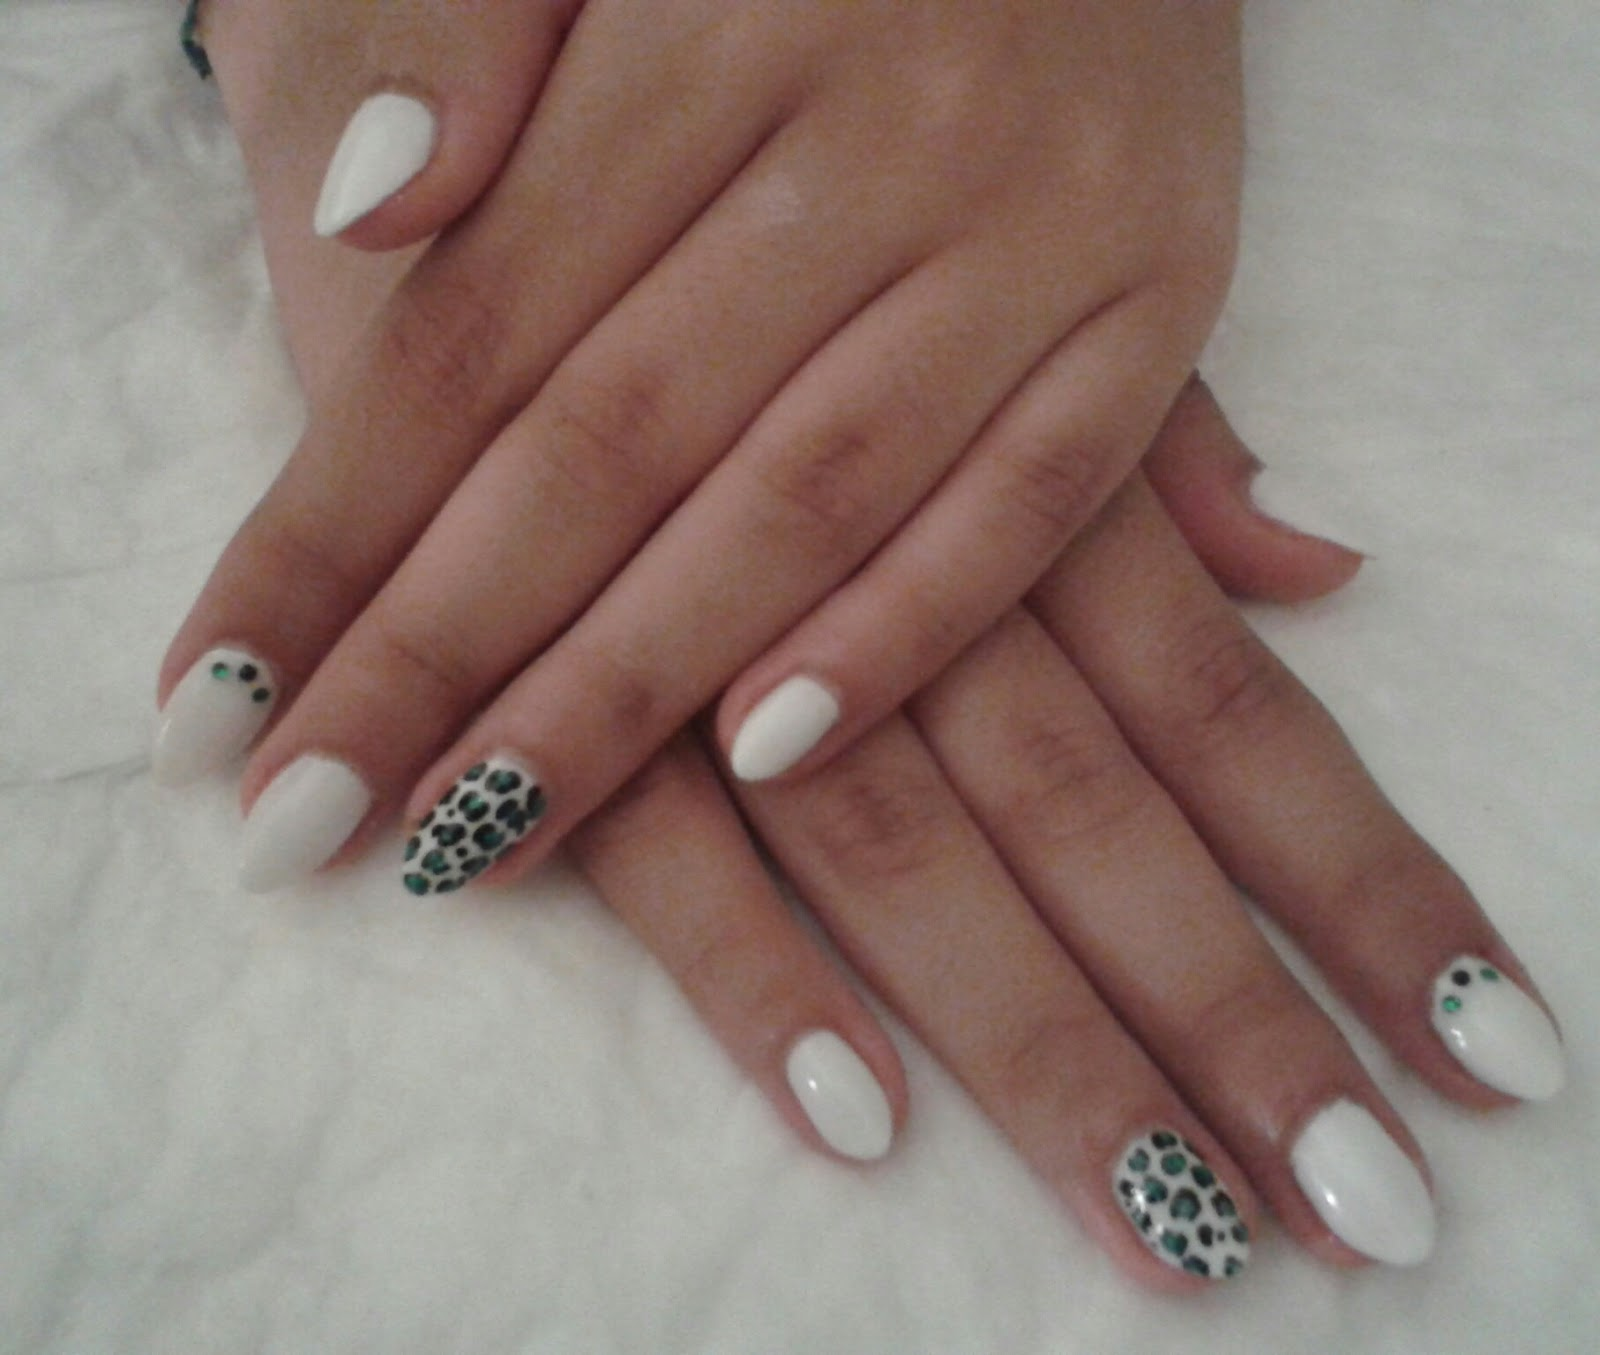 Molto Chic Roe: SMALTO GEL su unghie medio/corte_*NAIL ART LEOPARDATA SU  CO23